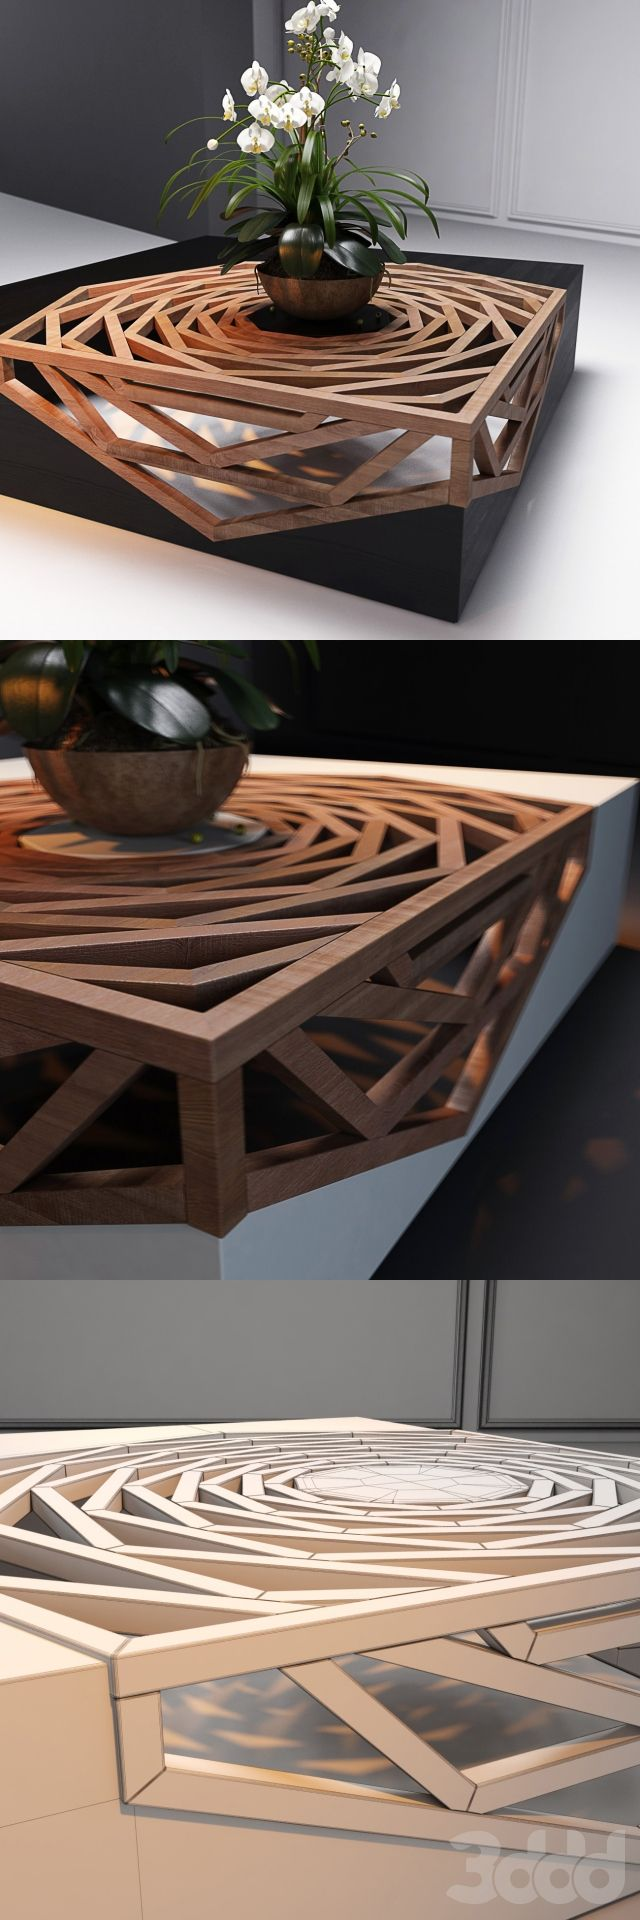 eye catching unique wood furniture 10 handpicked ideas on extraordinary creative wooden furniture design id=51680